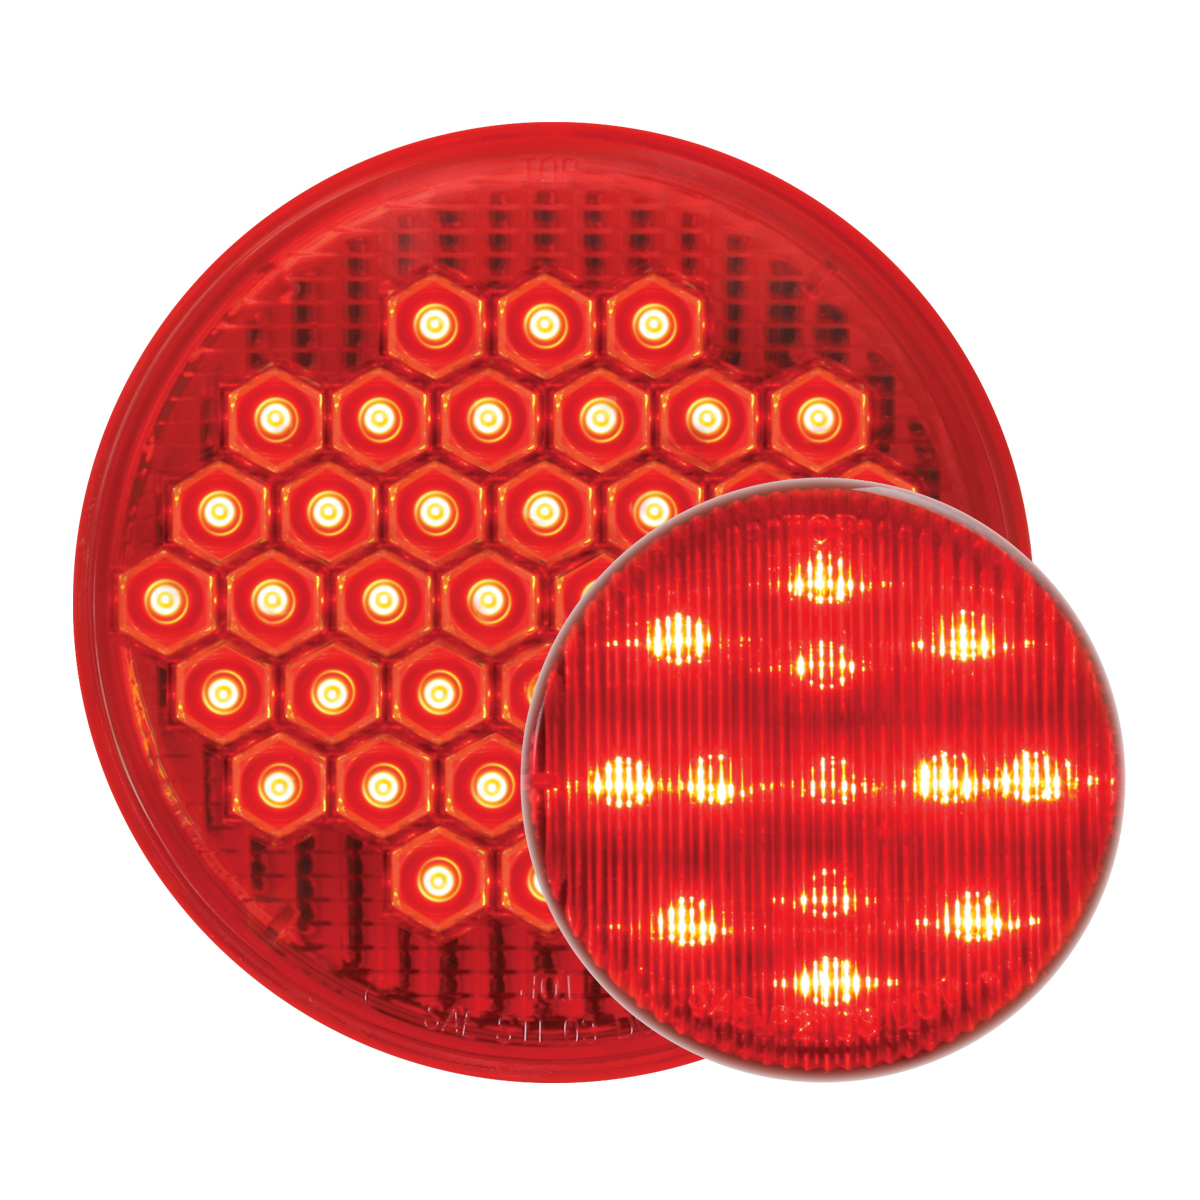 #87700/#79281 High Count LED Red/Red - Flat